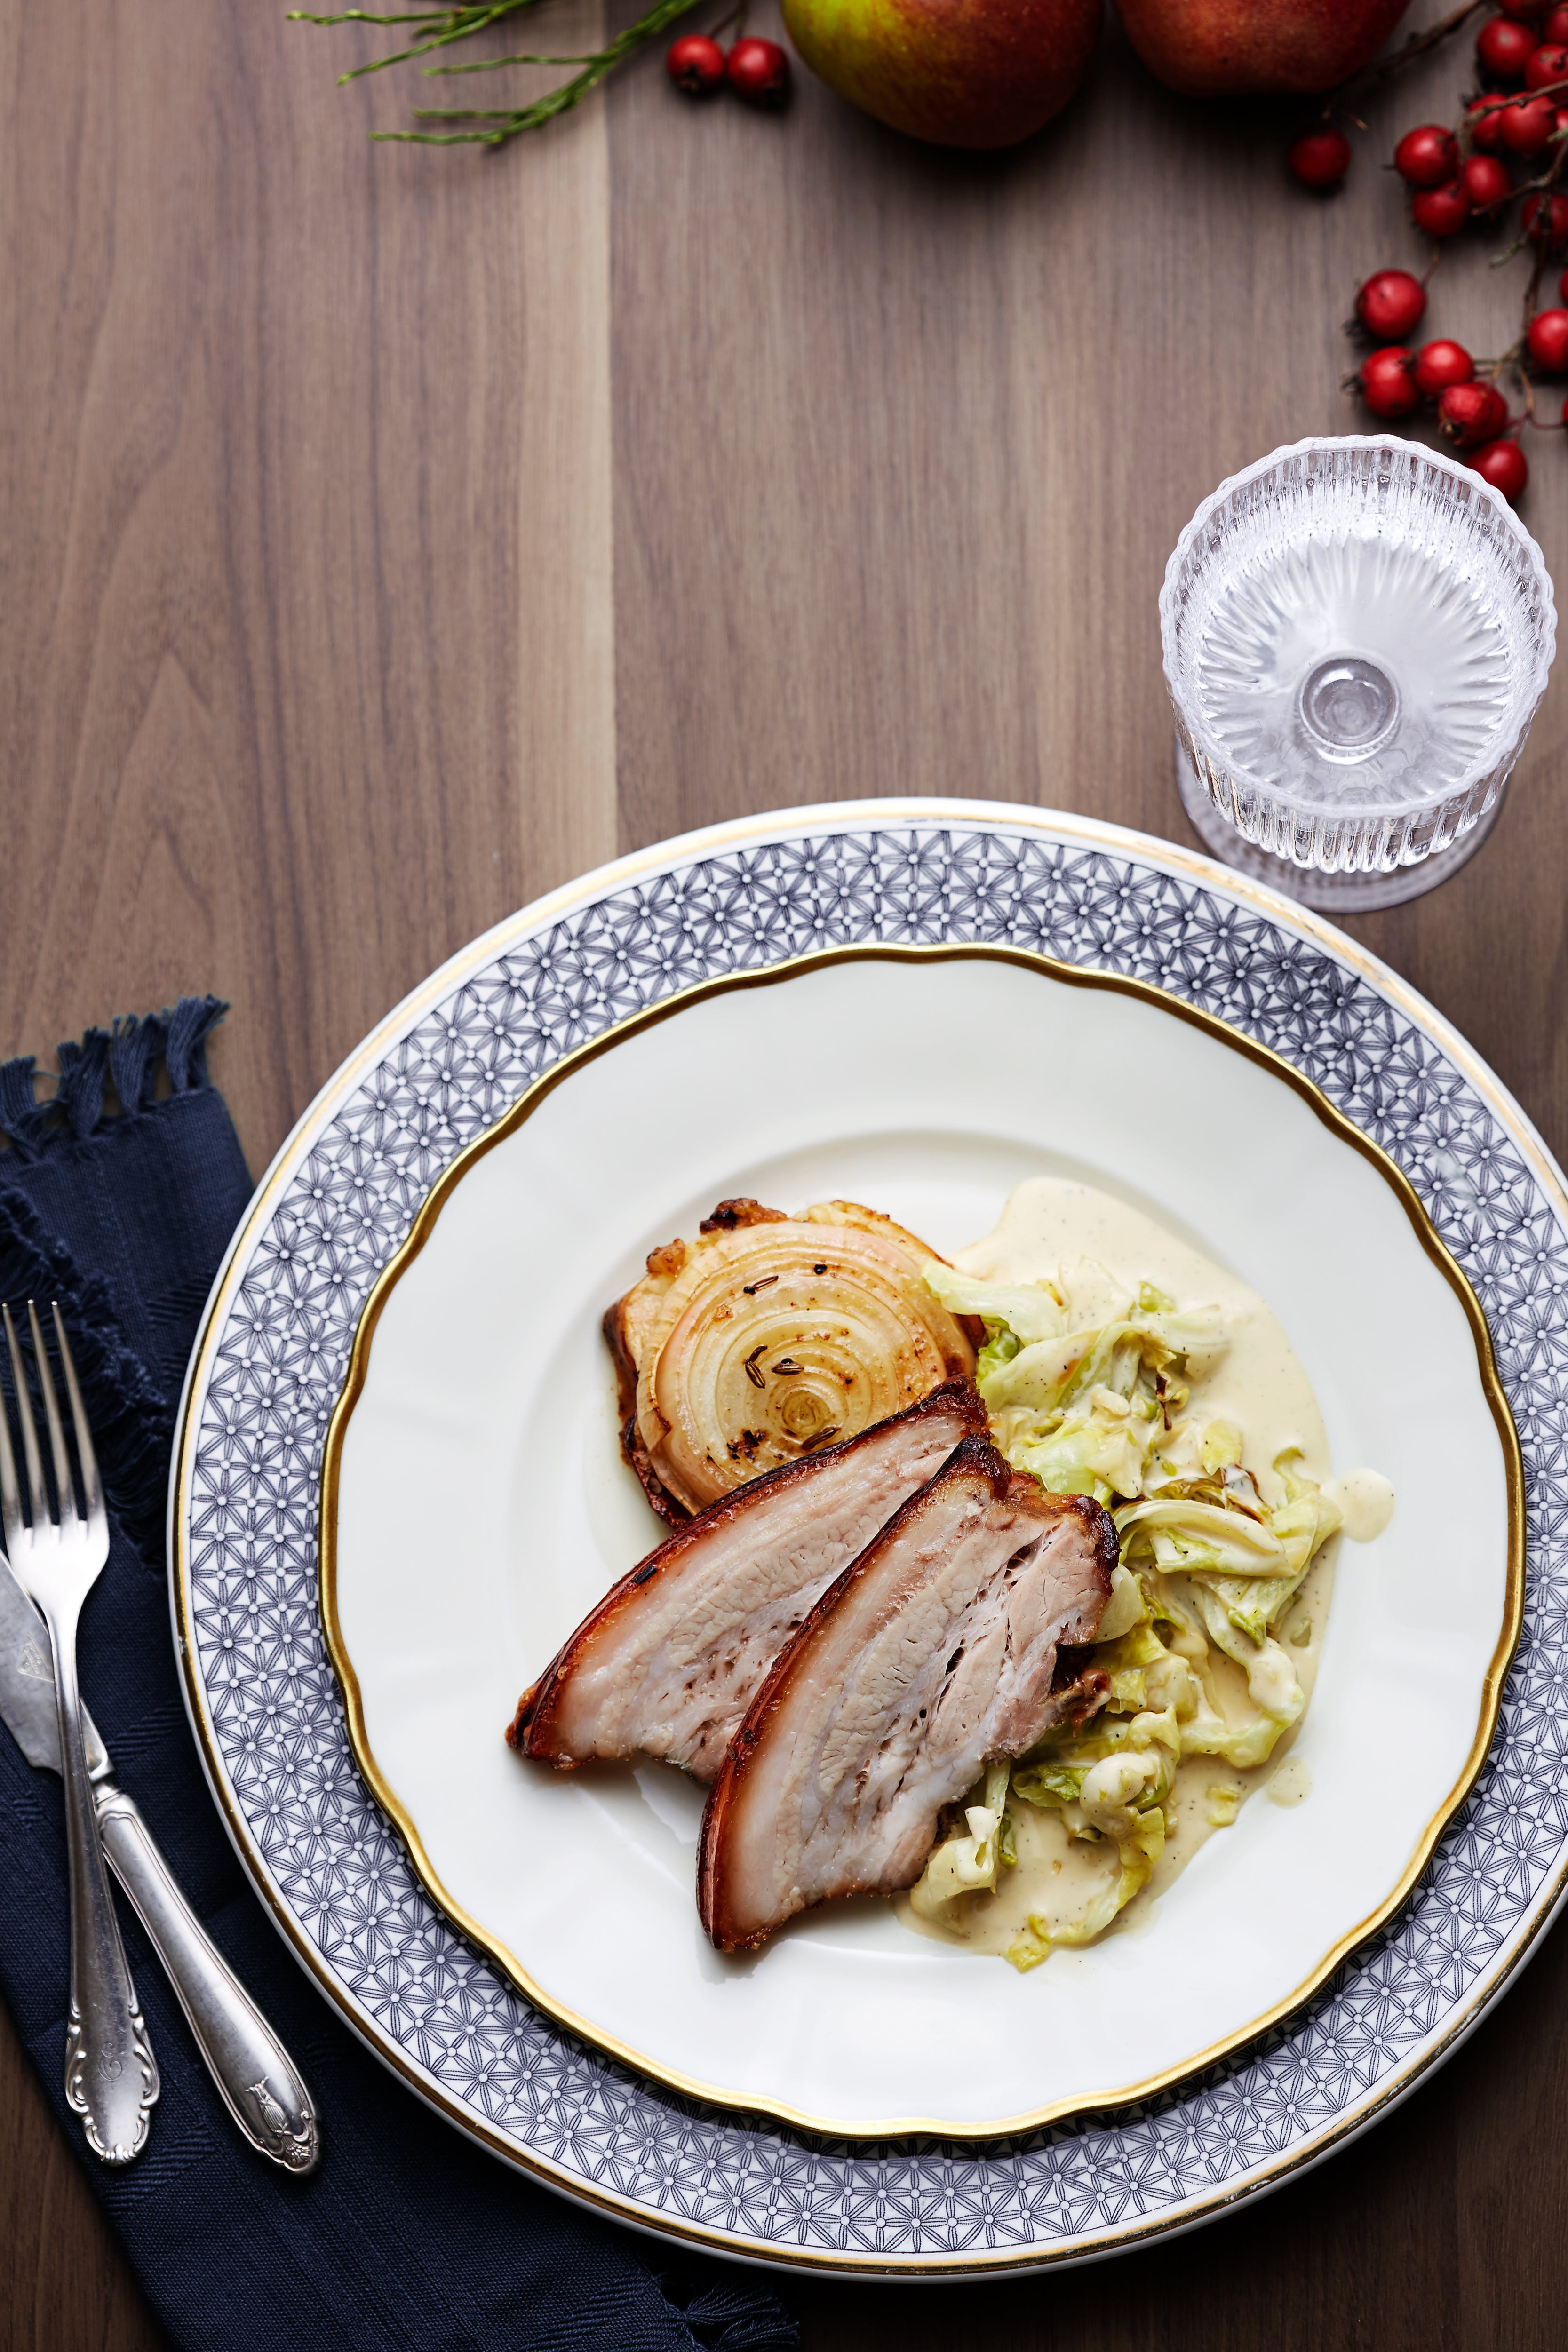 Roasted pork belly with creamed pointed cabbage